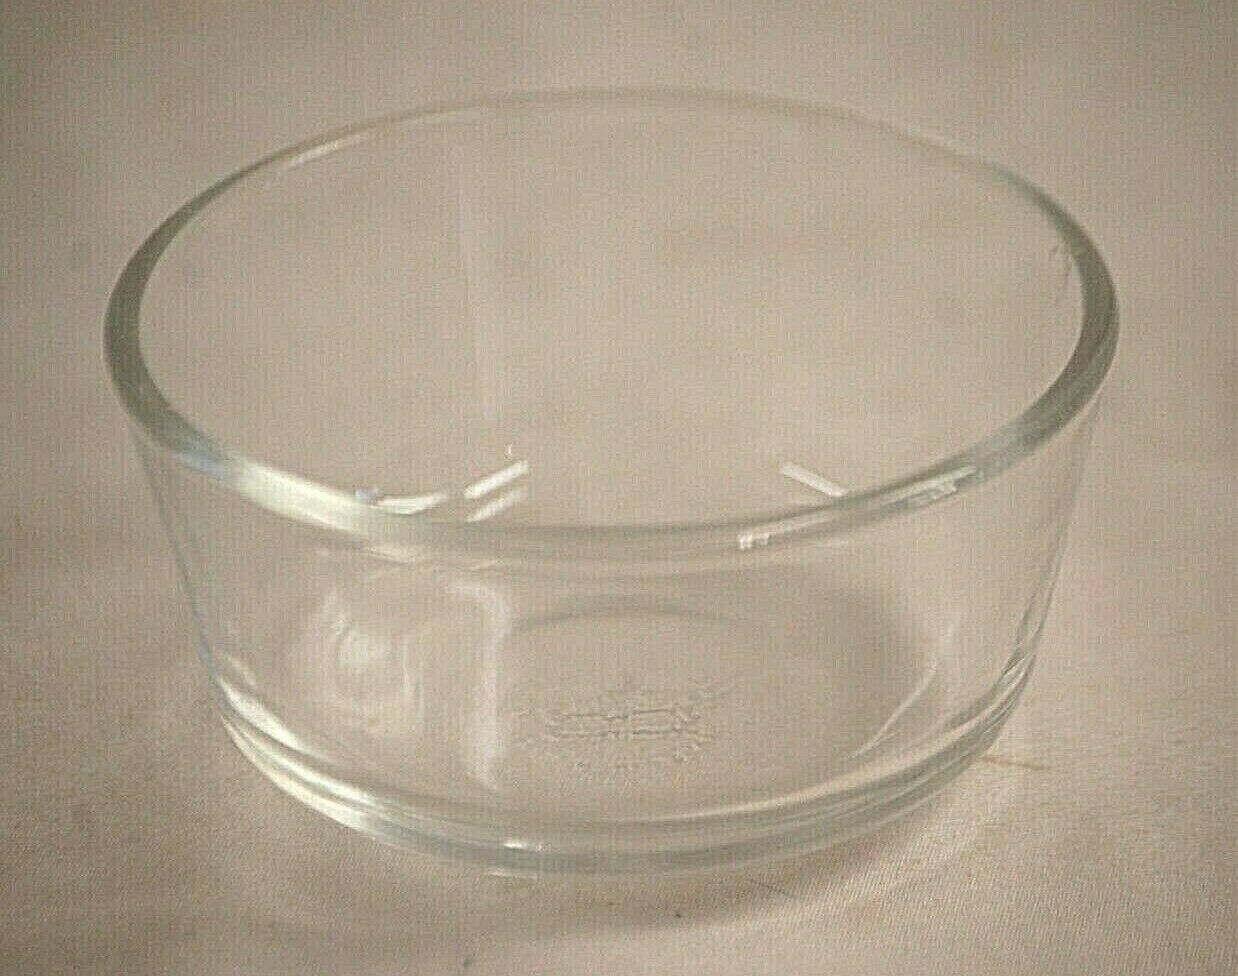 Primary image for Anchor Hocking Fire King Clear Glass Custard Cup Ramekin Vintage MCM USA